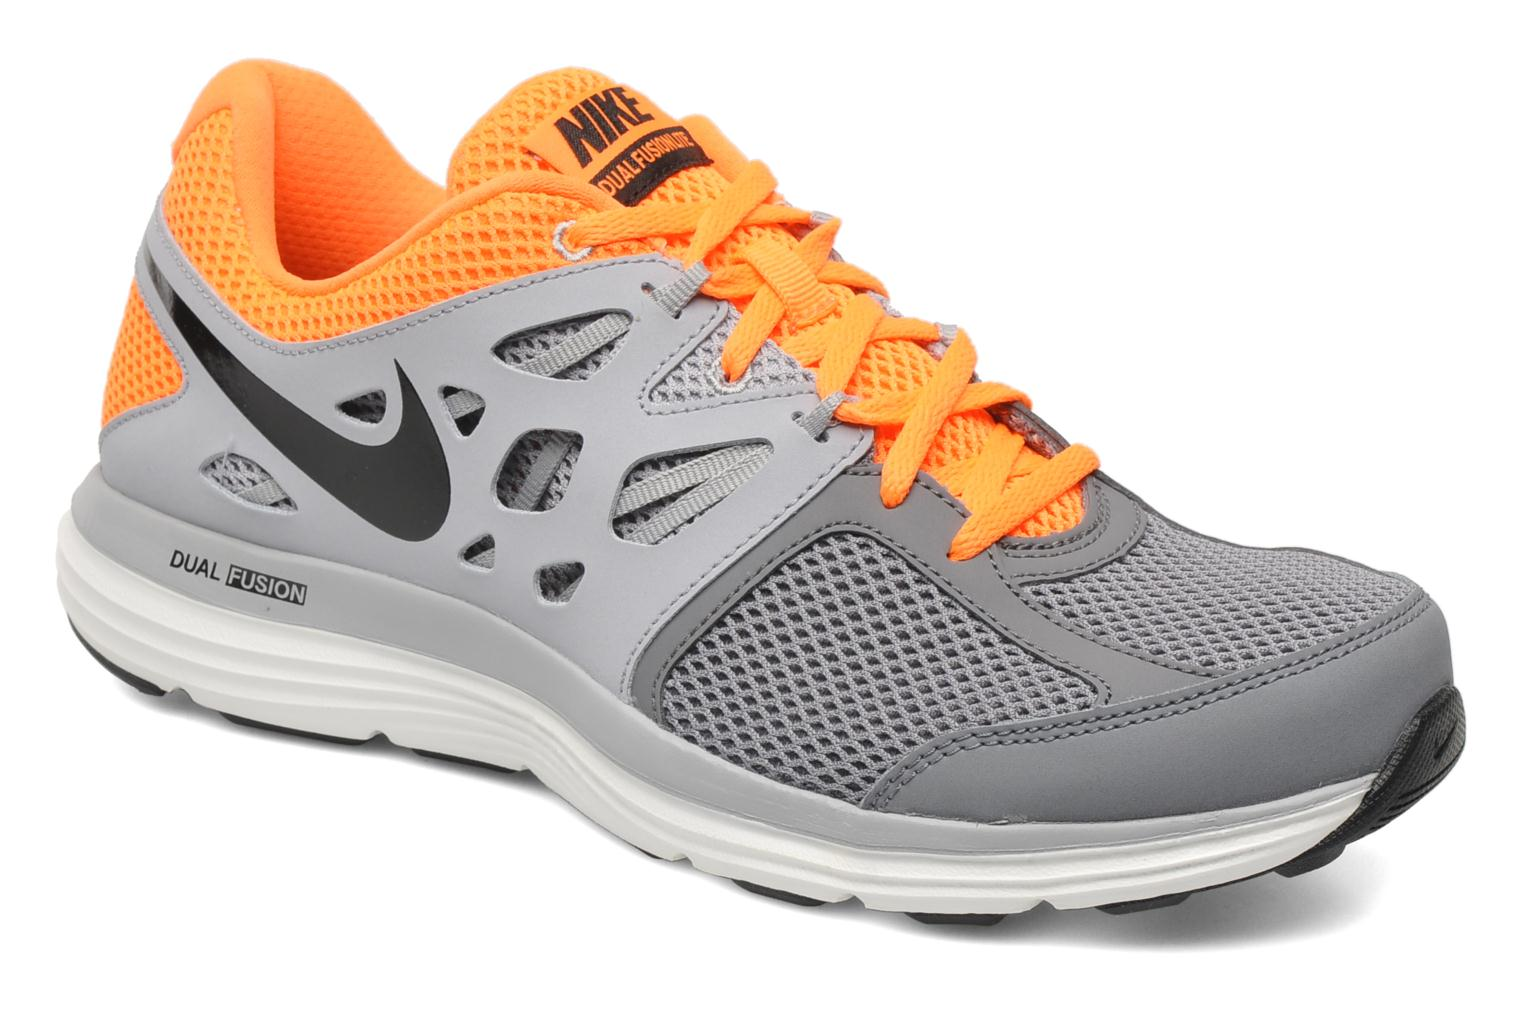 nike nike dual fusion lite sport shoes in grey at 182280. Black Bedroom Furniture Sets. Home Design Ideas